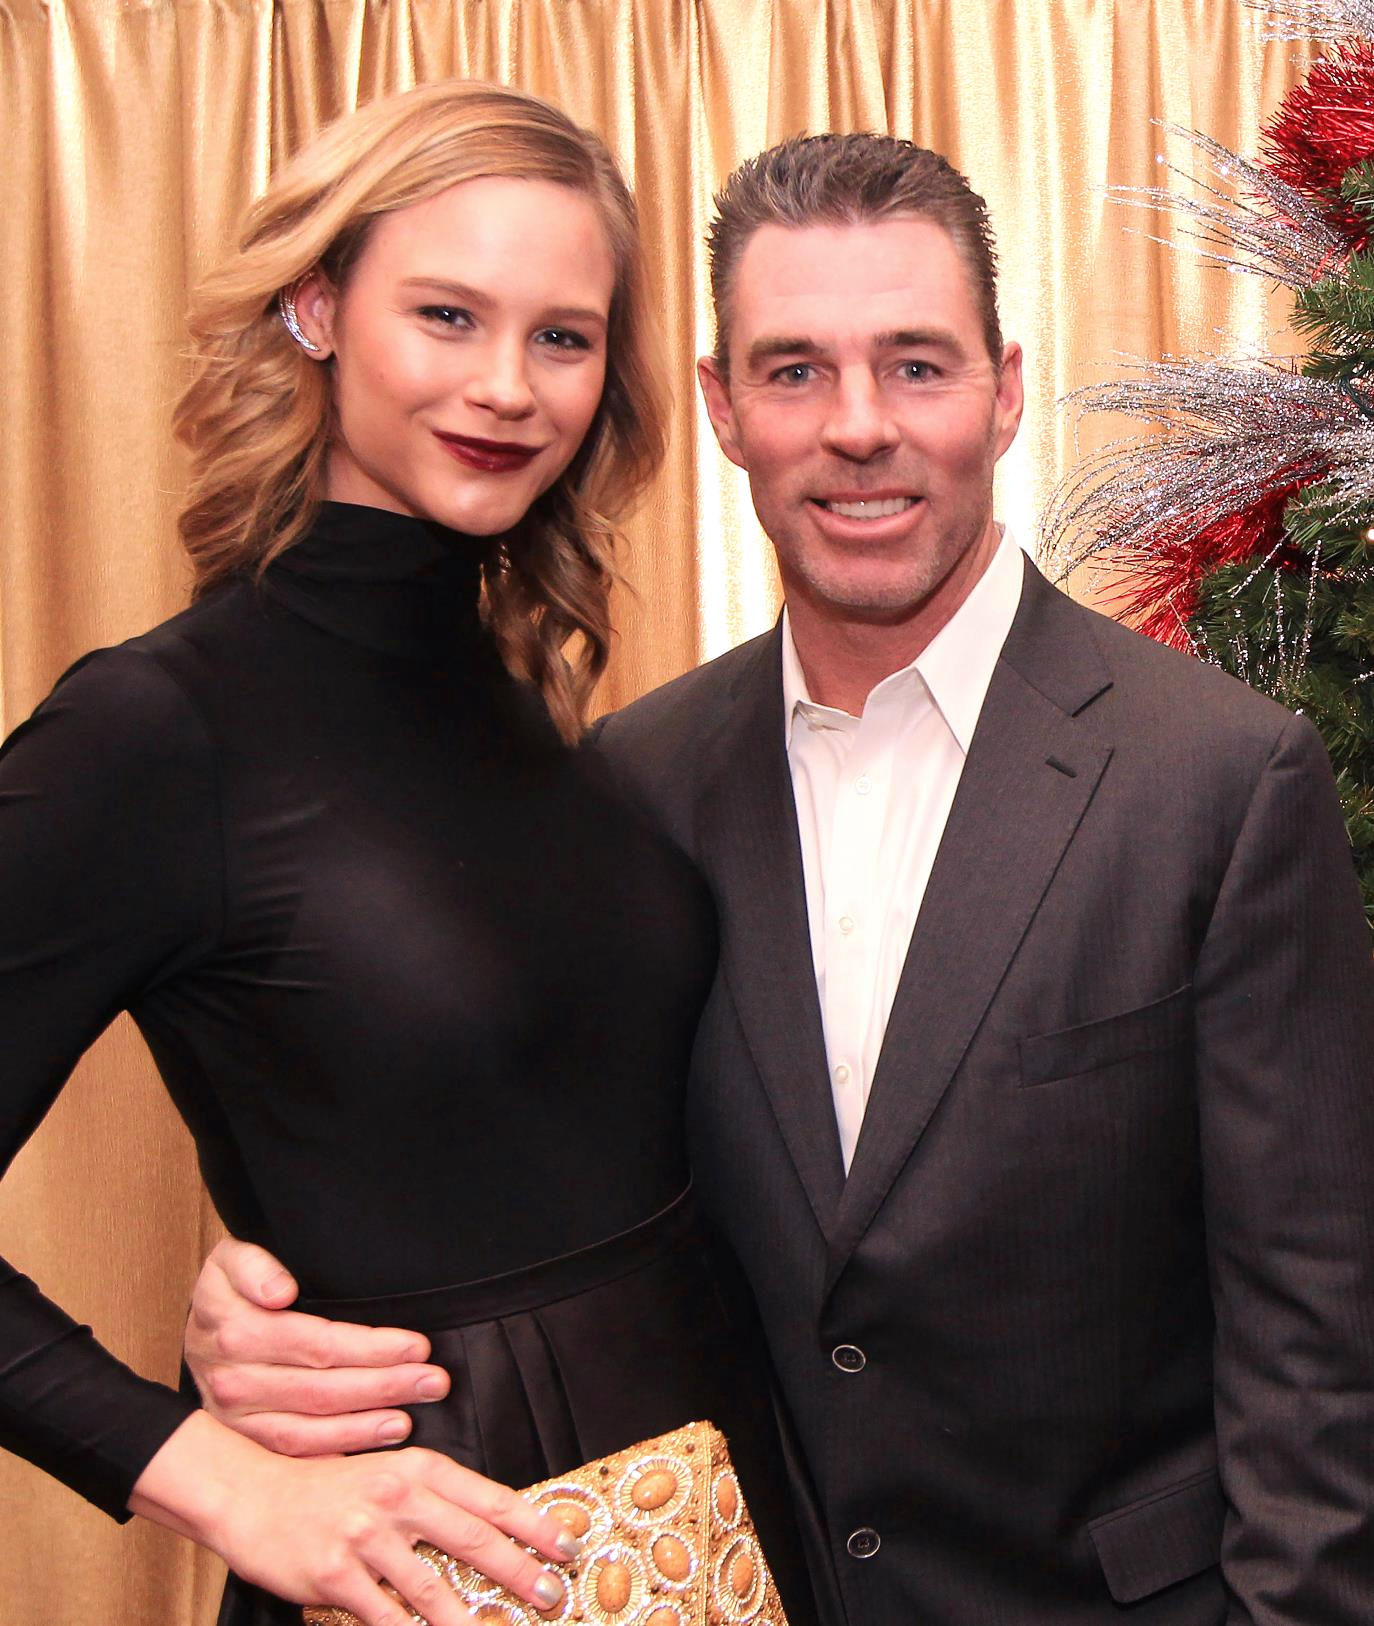 RHOC Star Meghan King Edmonds Accuses Jim of Dating Her Former Friend Who They Once Slept With, Cries Over Betrayal and Suggests He's Putting Her Before Their Ailing Son